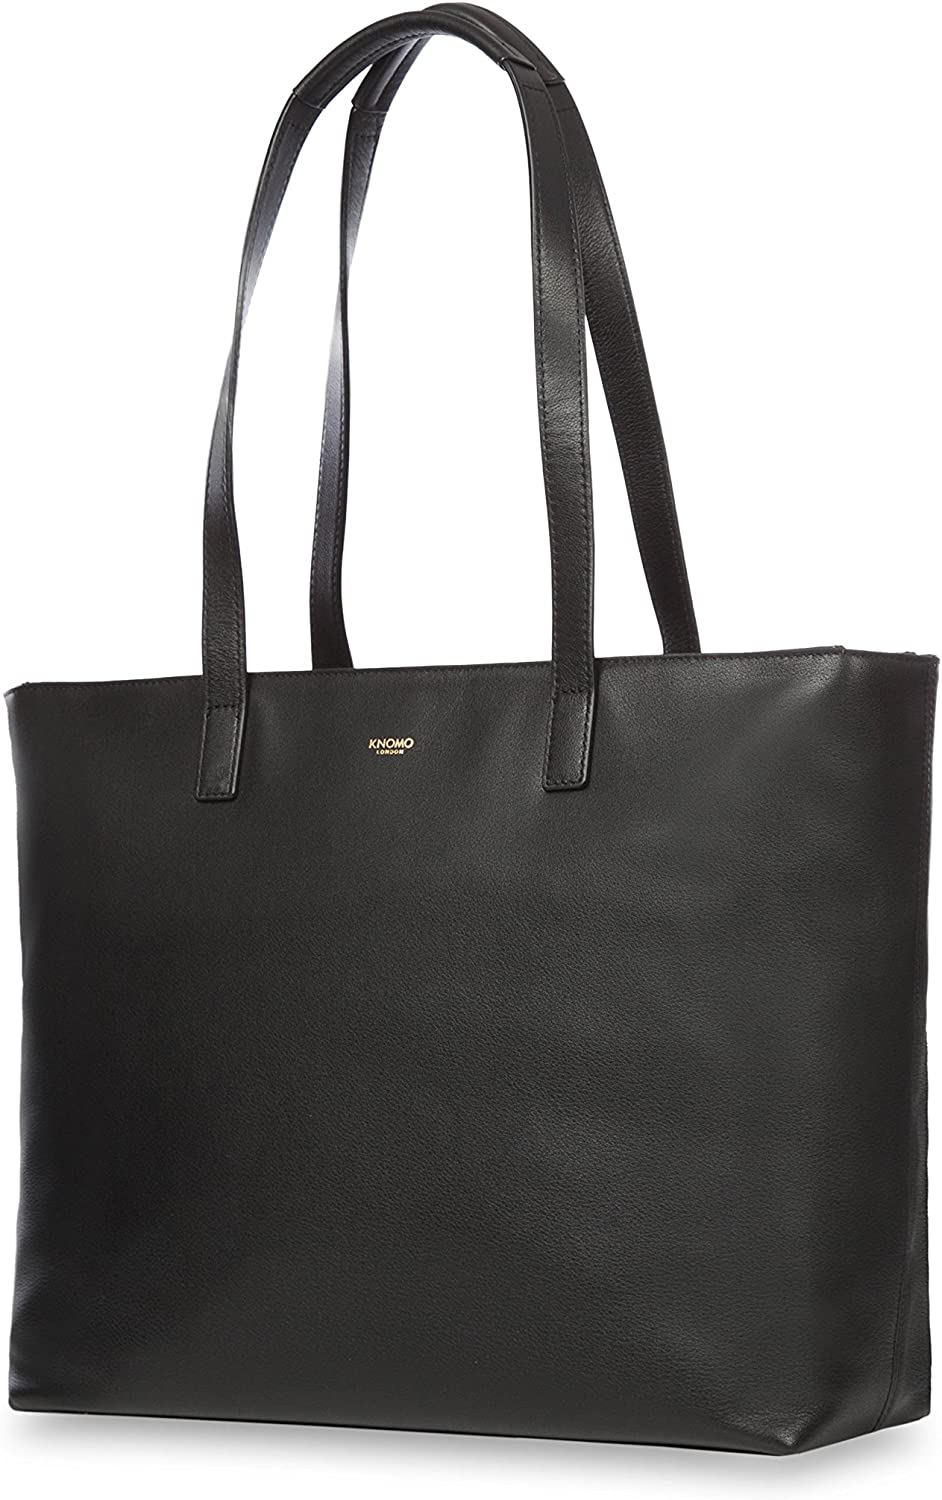 Top 7 Laptop Tote With Charger